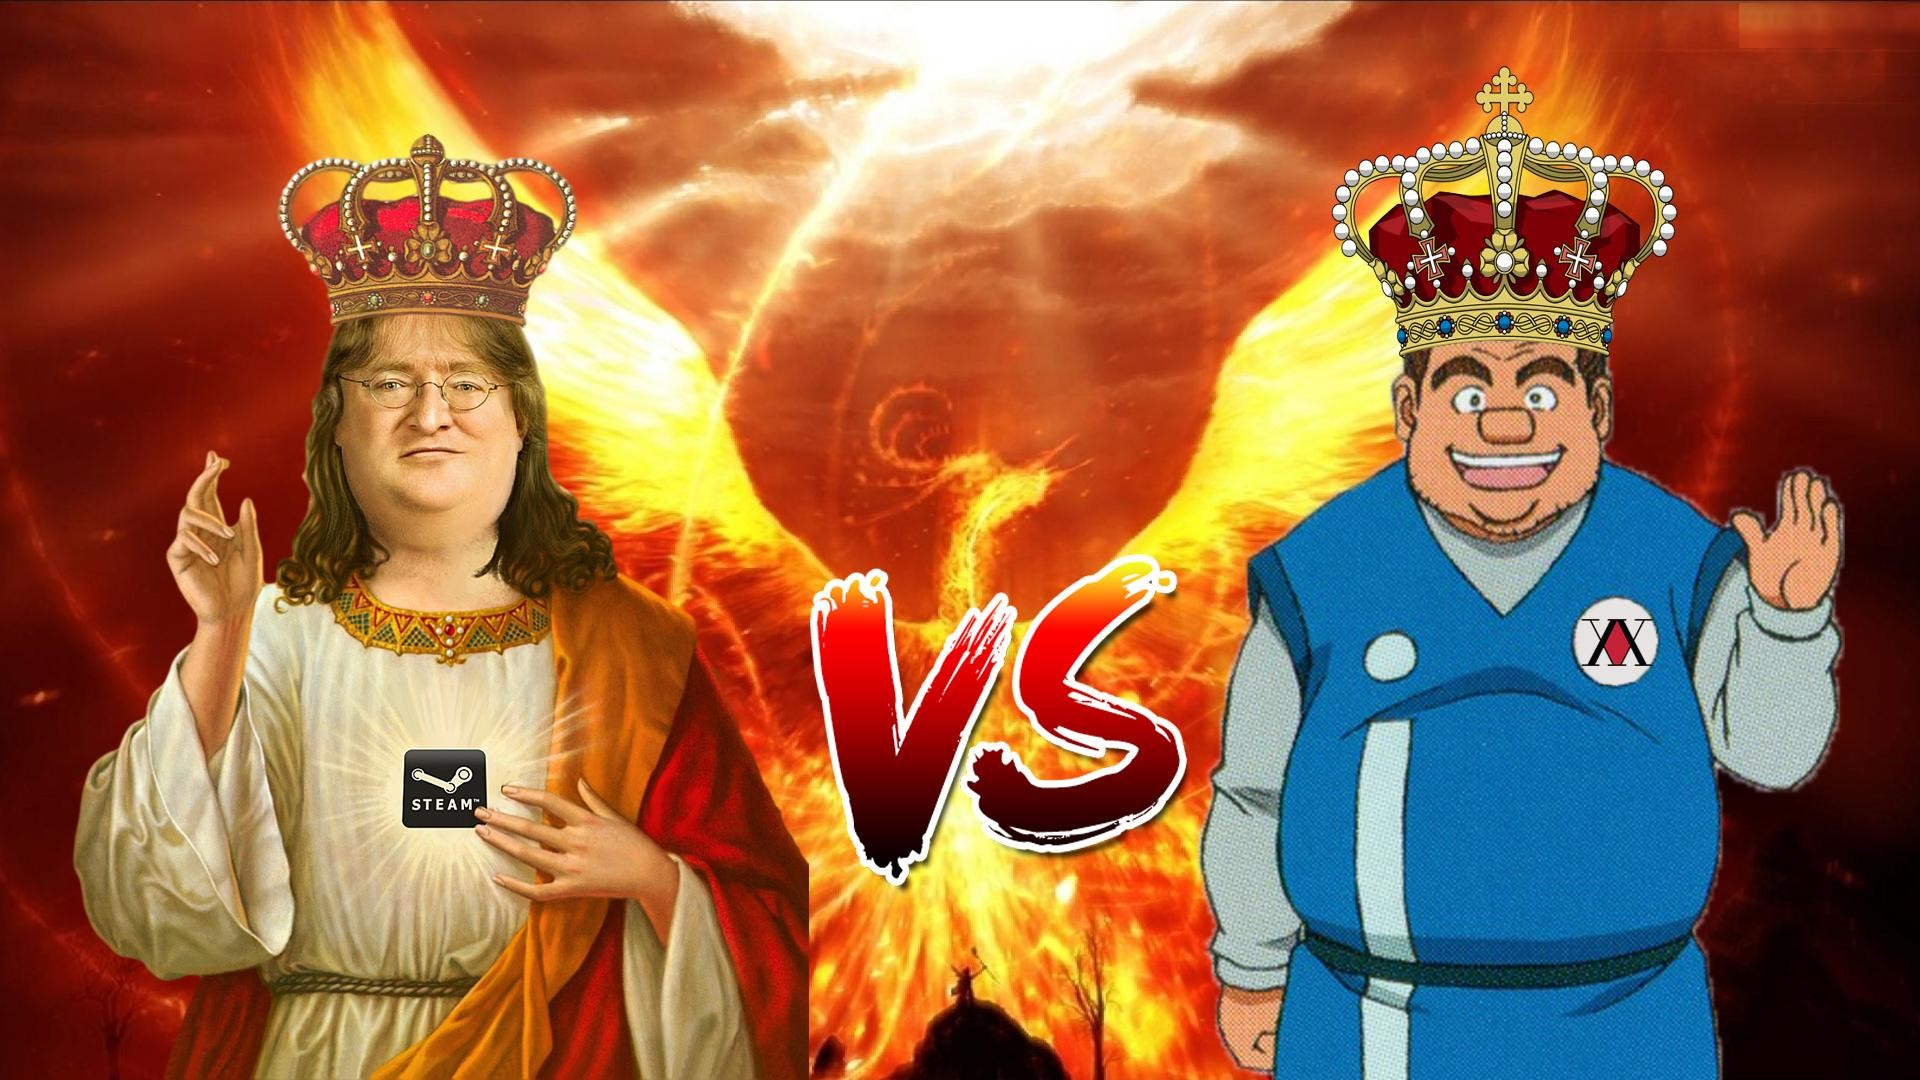 1920x1080 Who would win? Our Lord Tonpa vs the False Prophet Gaben.